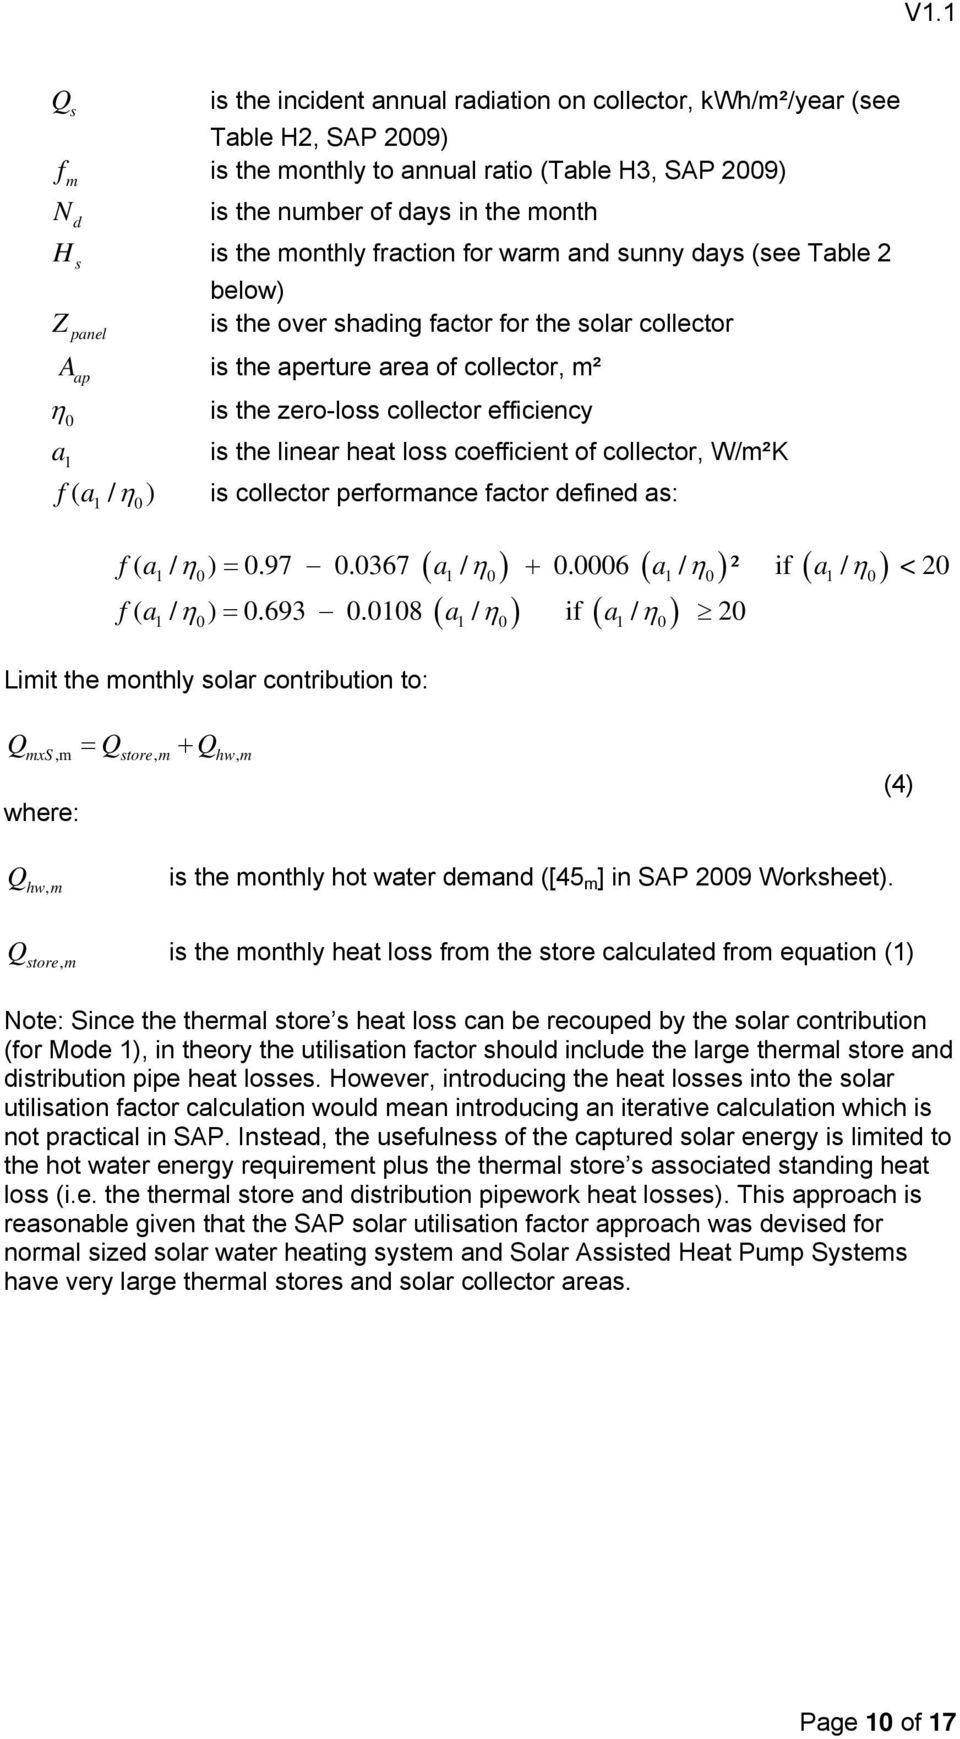 the linear heat loss coefficient of collector, W/²K f( a / ) is collector perforance factor defined as: 1 0 f( a / ) 0.97 0.0367 a / 0.0006 a / ² if a / < 20 1 0 1 0 1 0 1 0 f( a / ) 0.693 0.